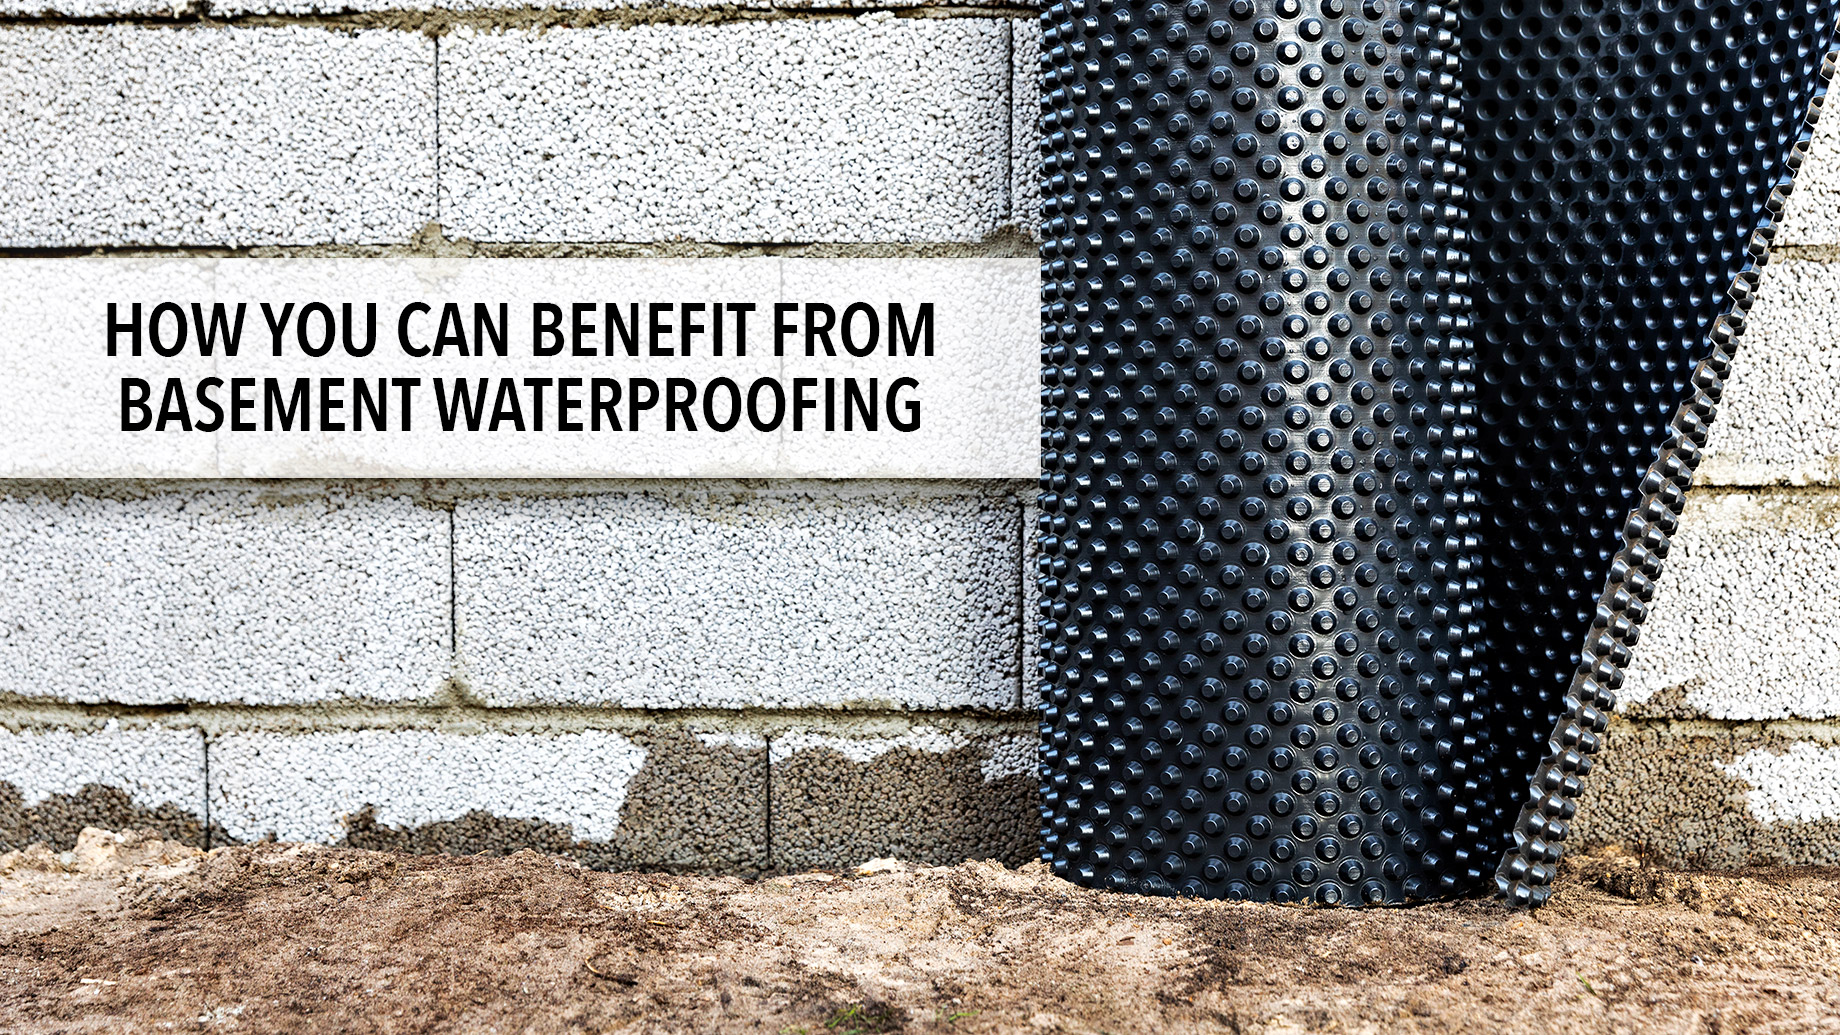 How You Can Benefit from Basement Waterproofing